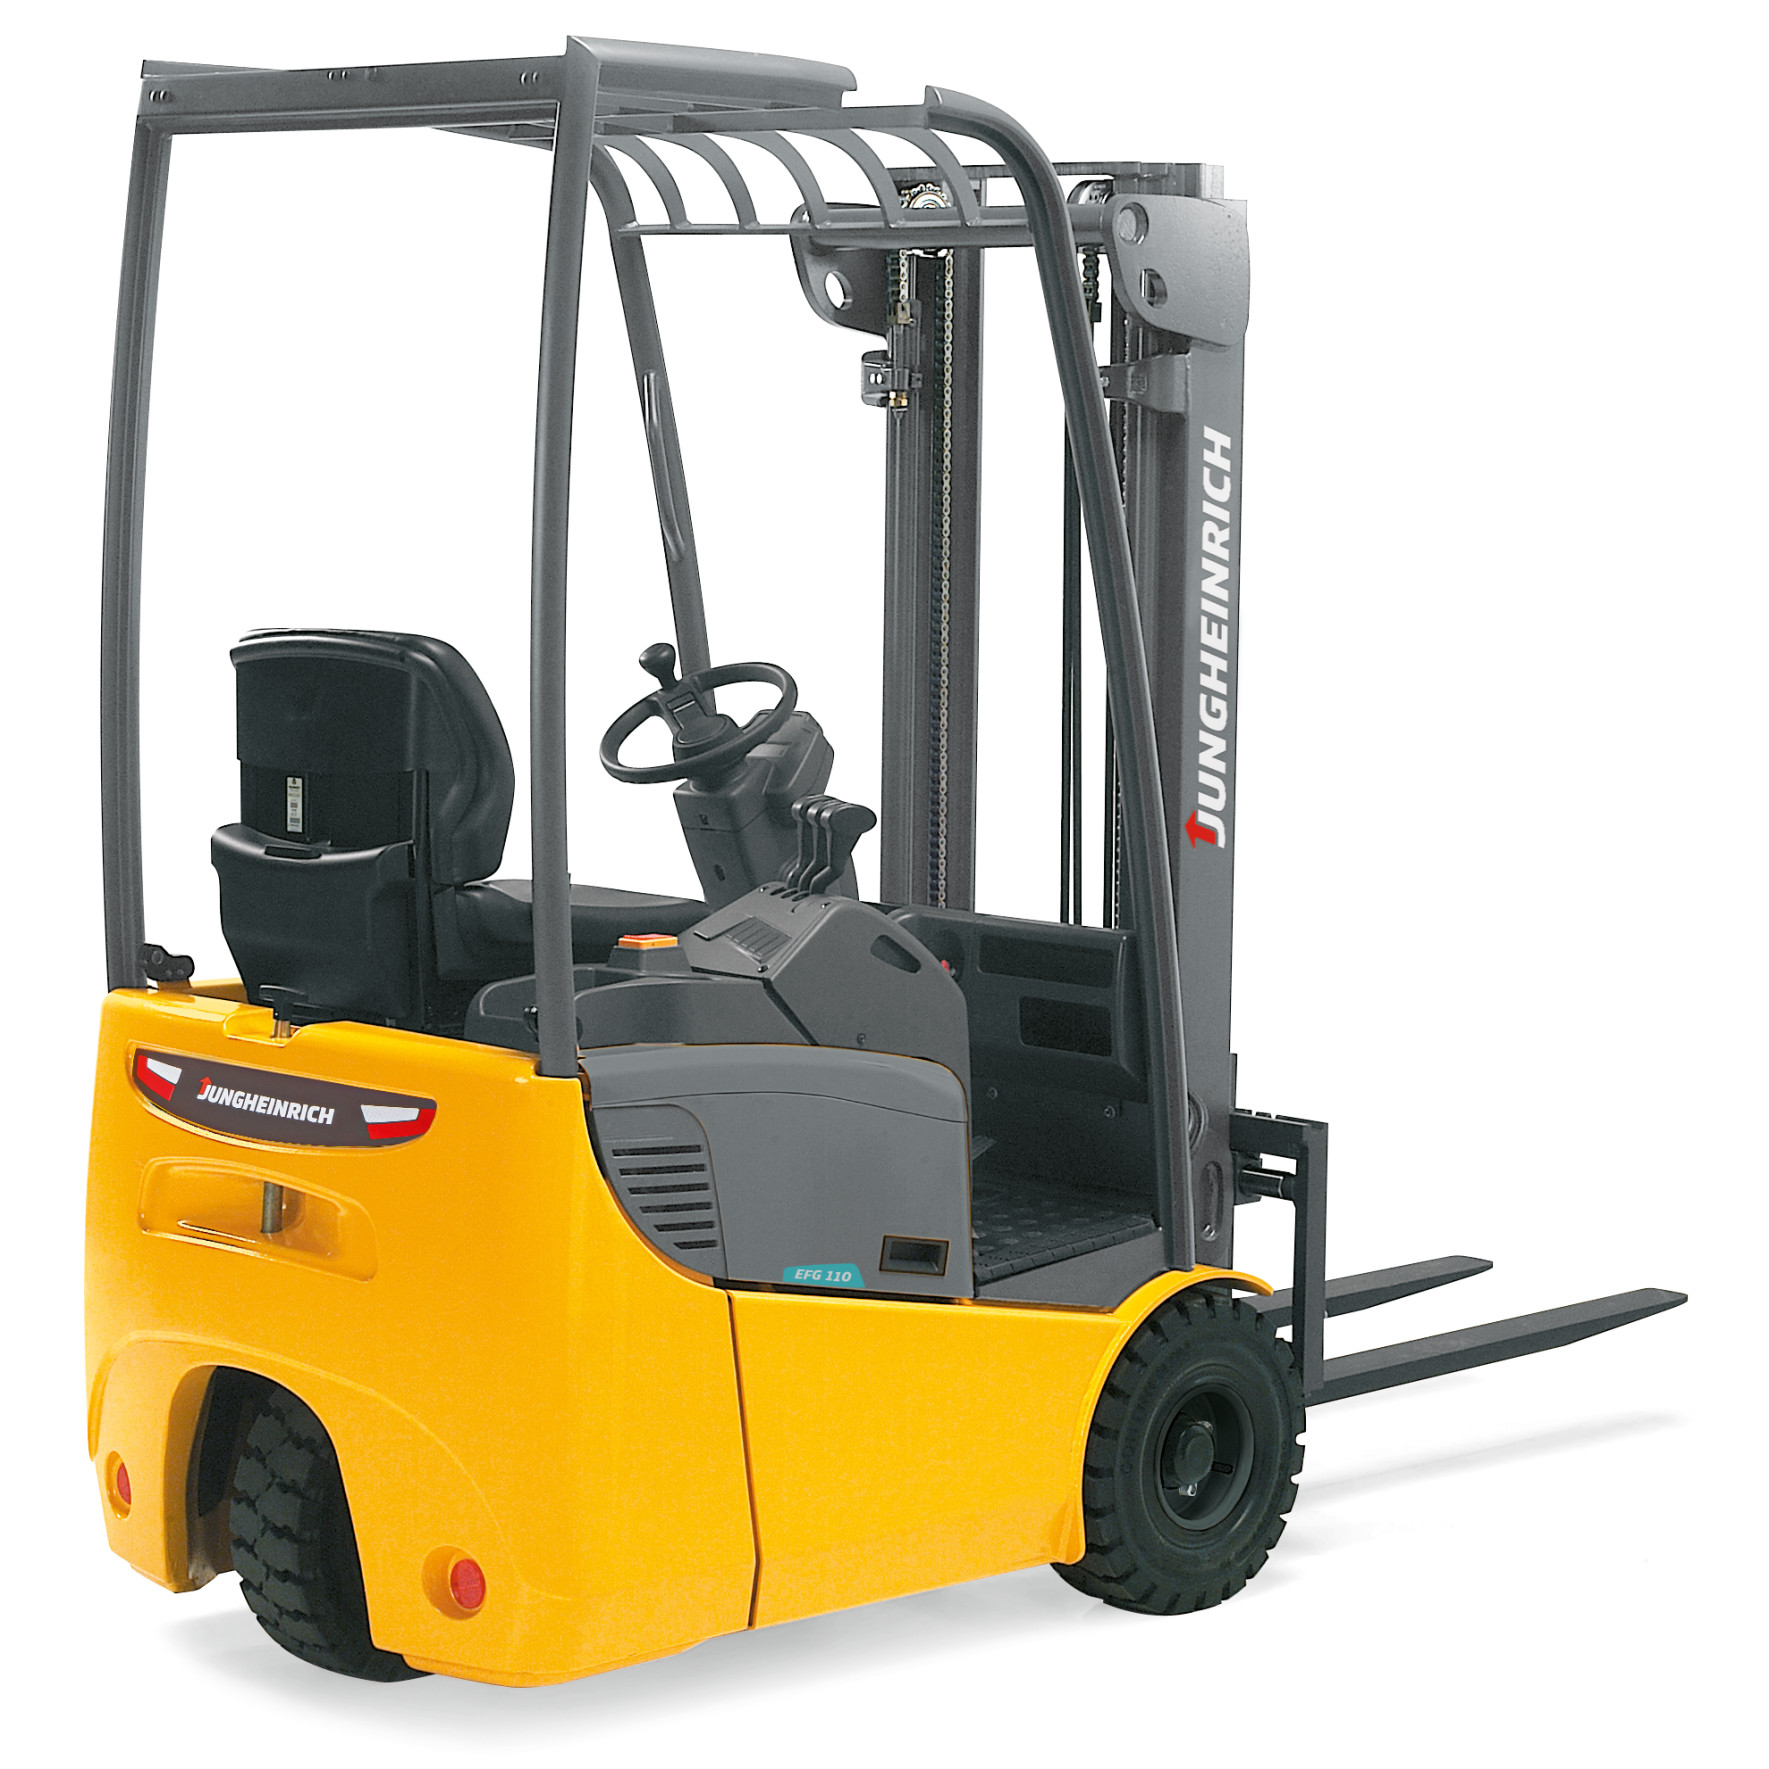 27 jungheinrich forklifts service manuals free download